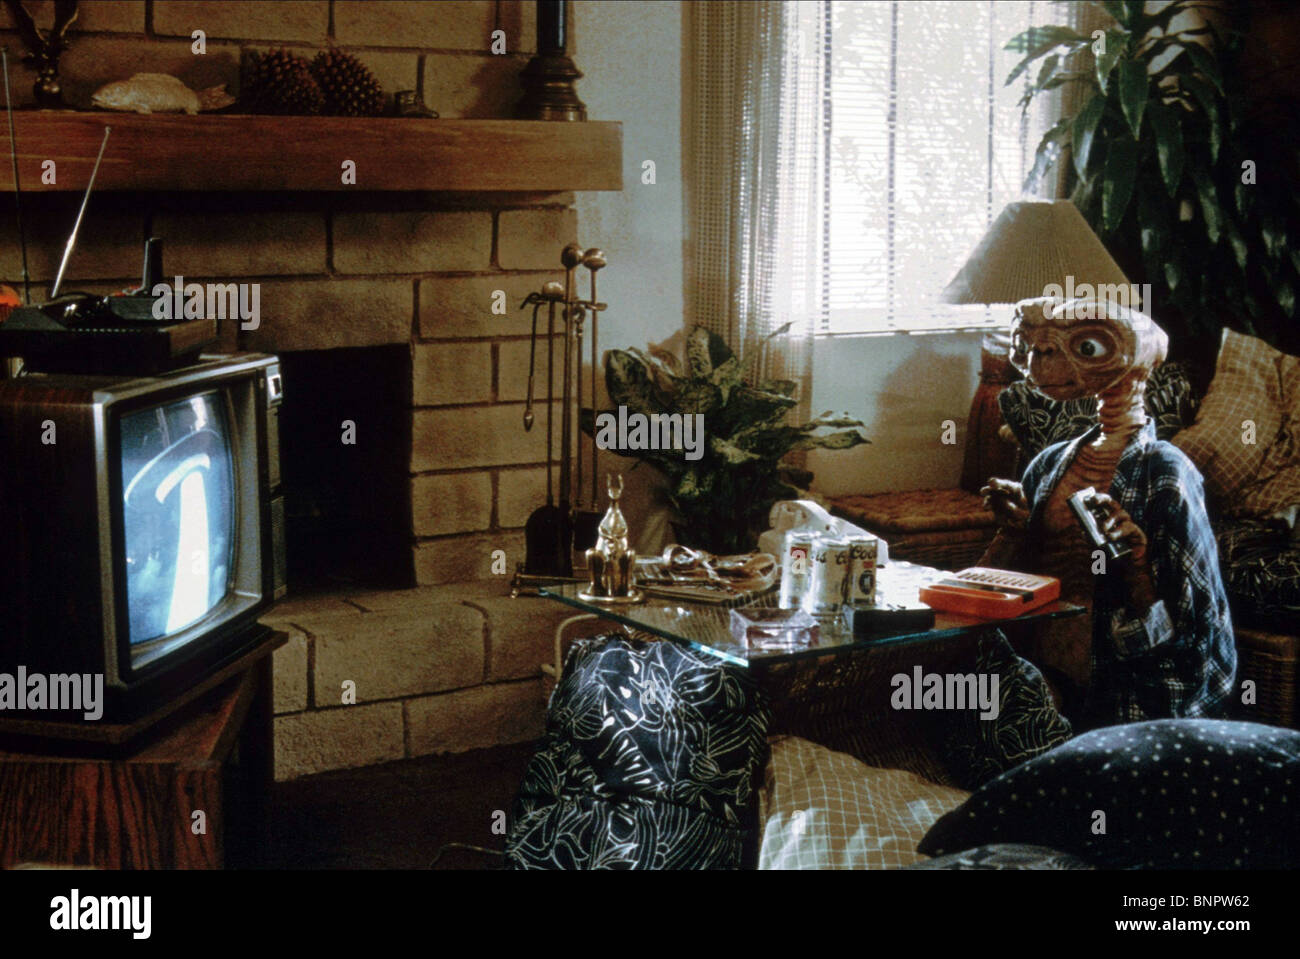 ALIEN WATCHES TELEVISION E.T. THE EXTRA-TERRESTRIAL (1982) - Stock Image